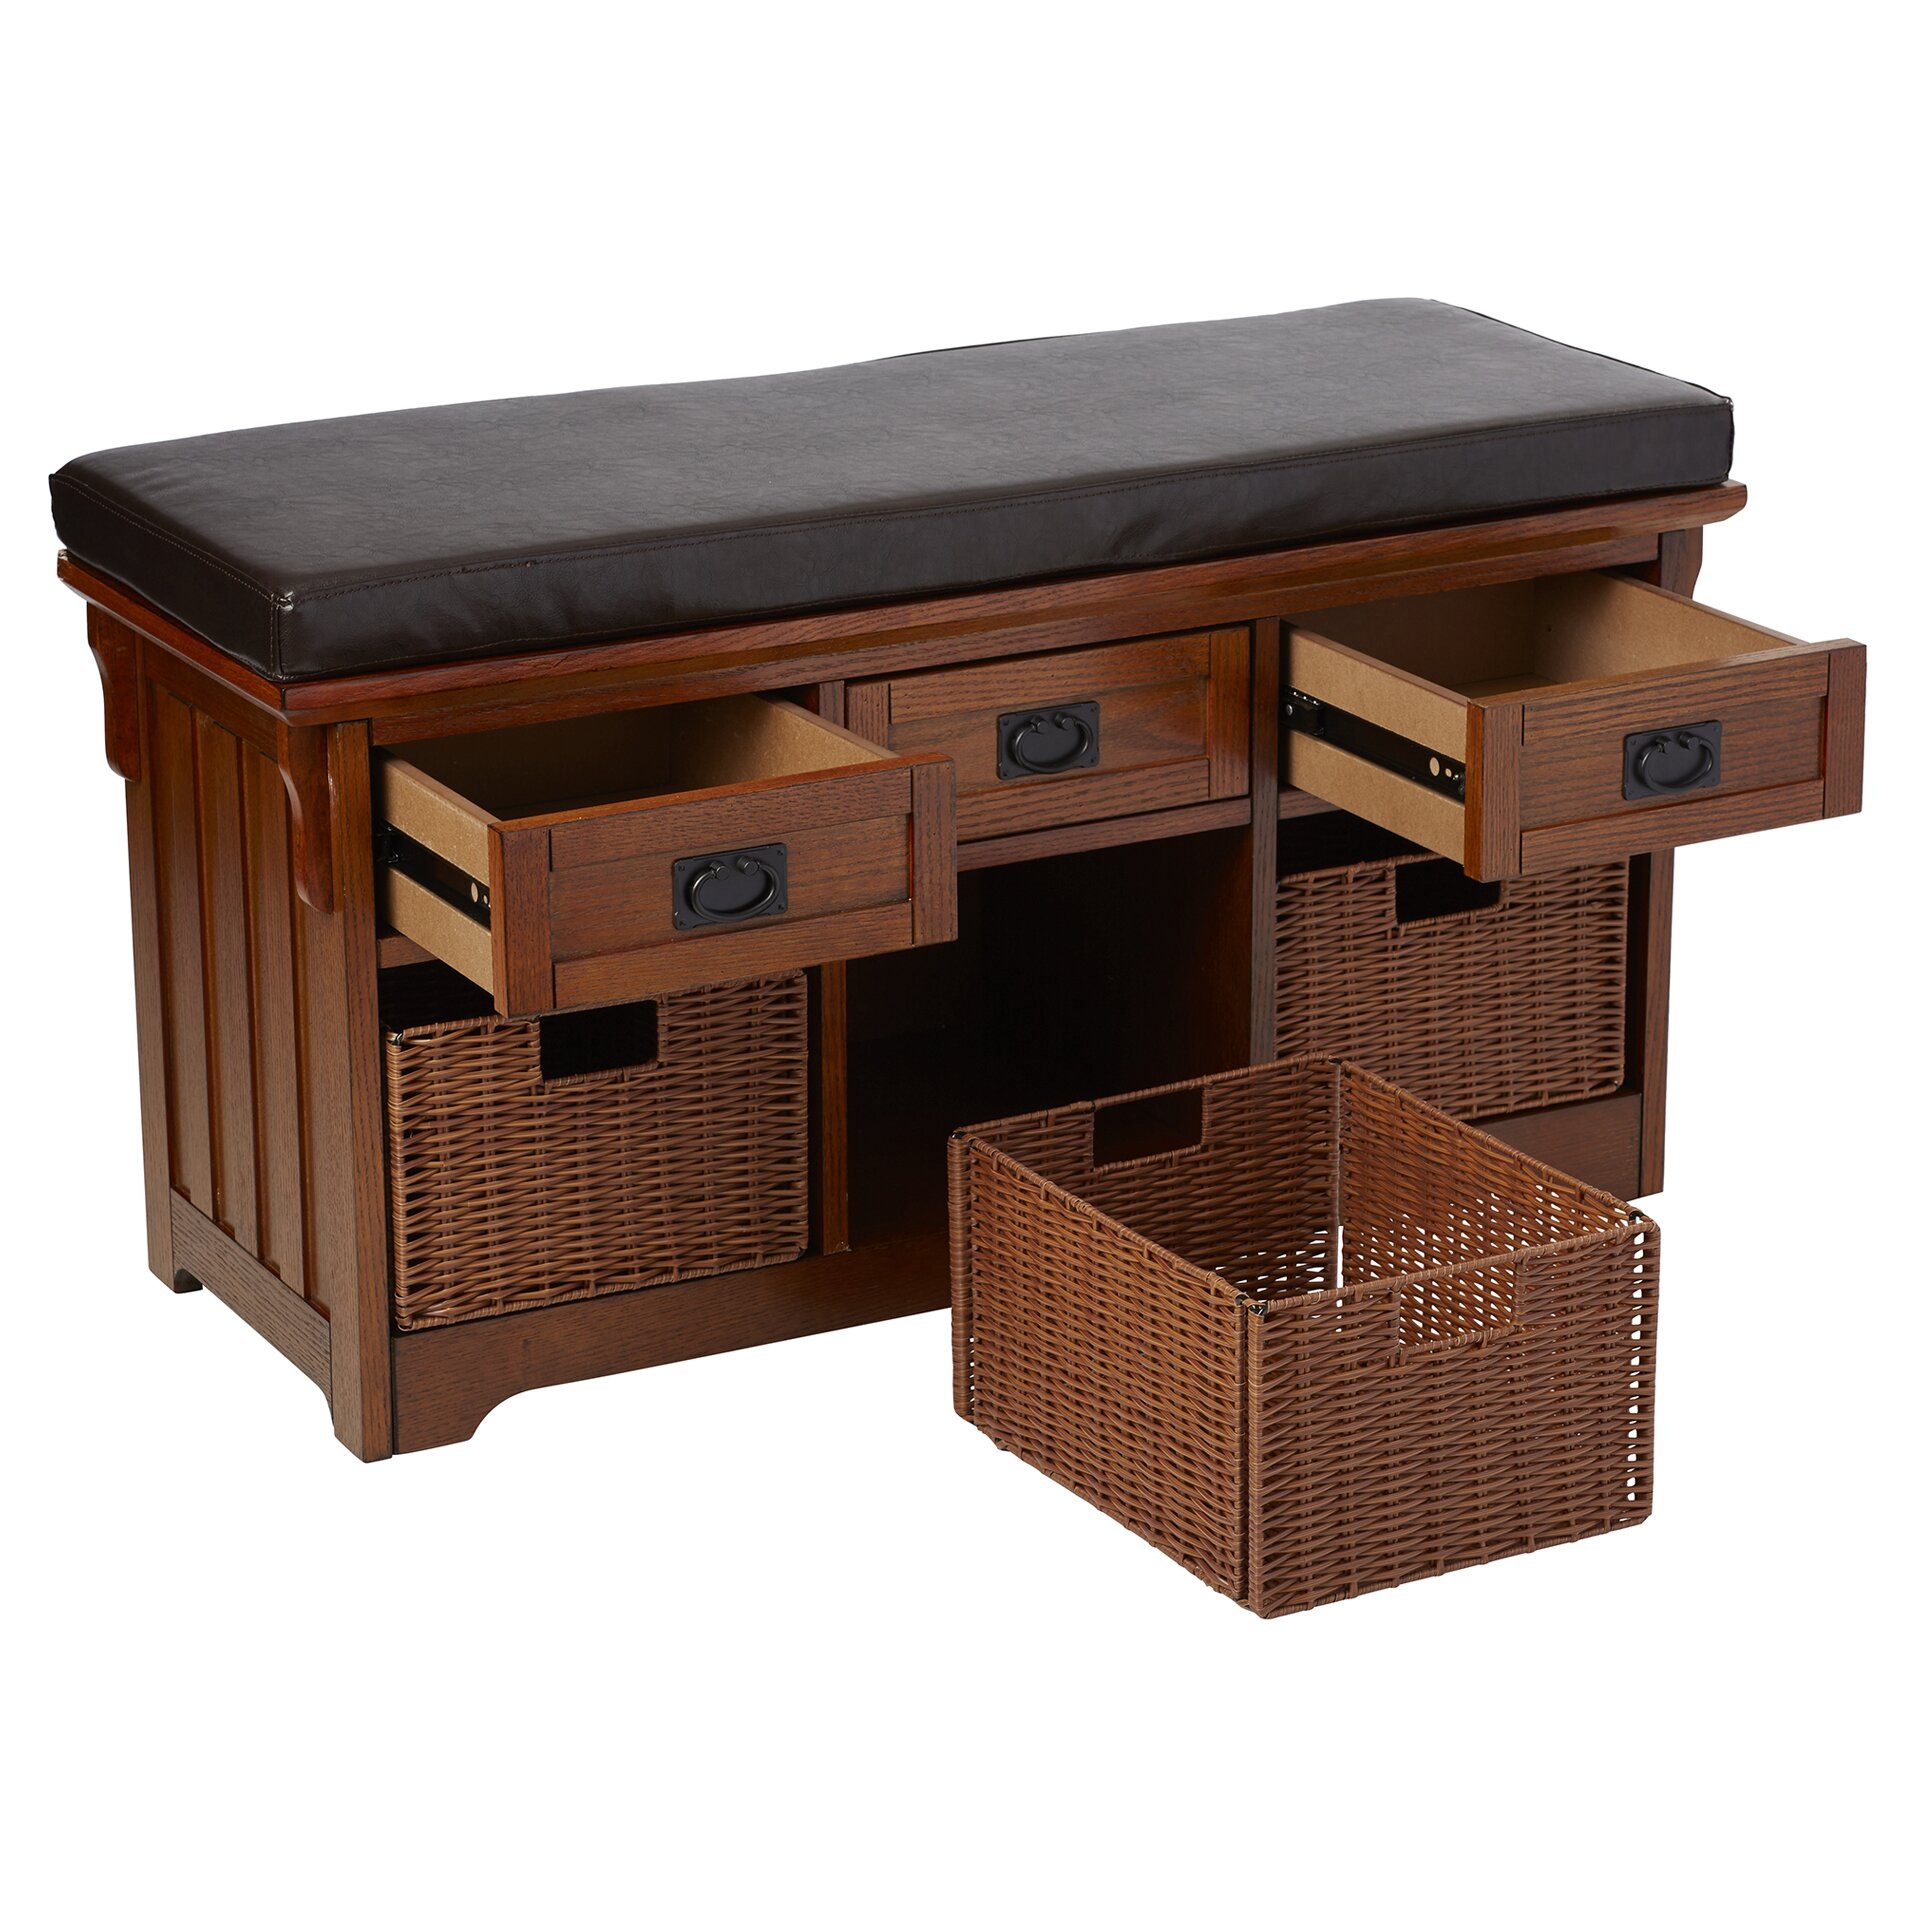 Loon Peak Hemlock Wooden Entryway Storage Bench Reviews